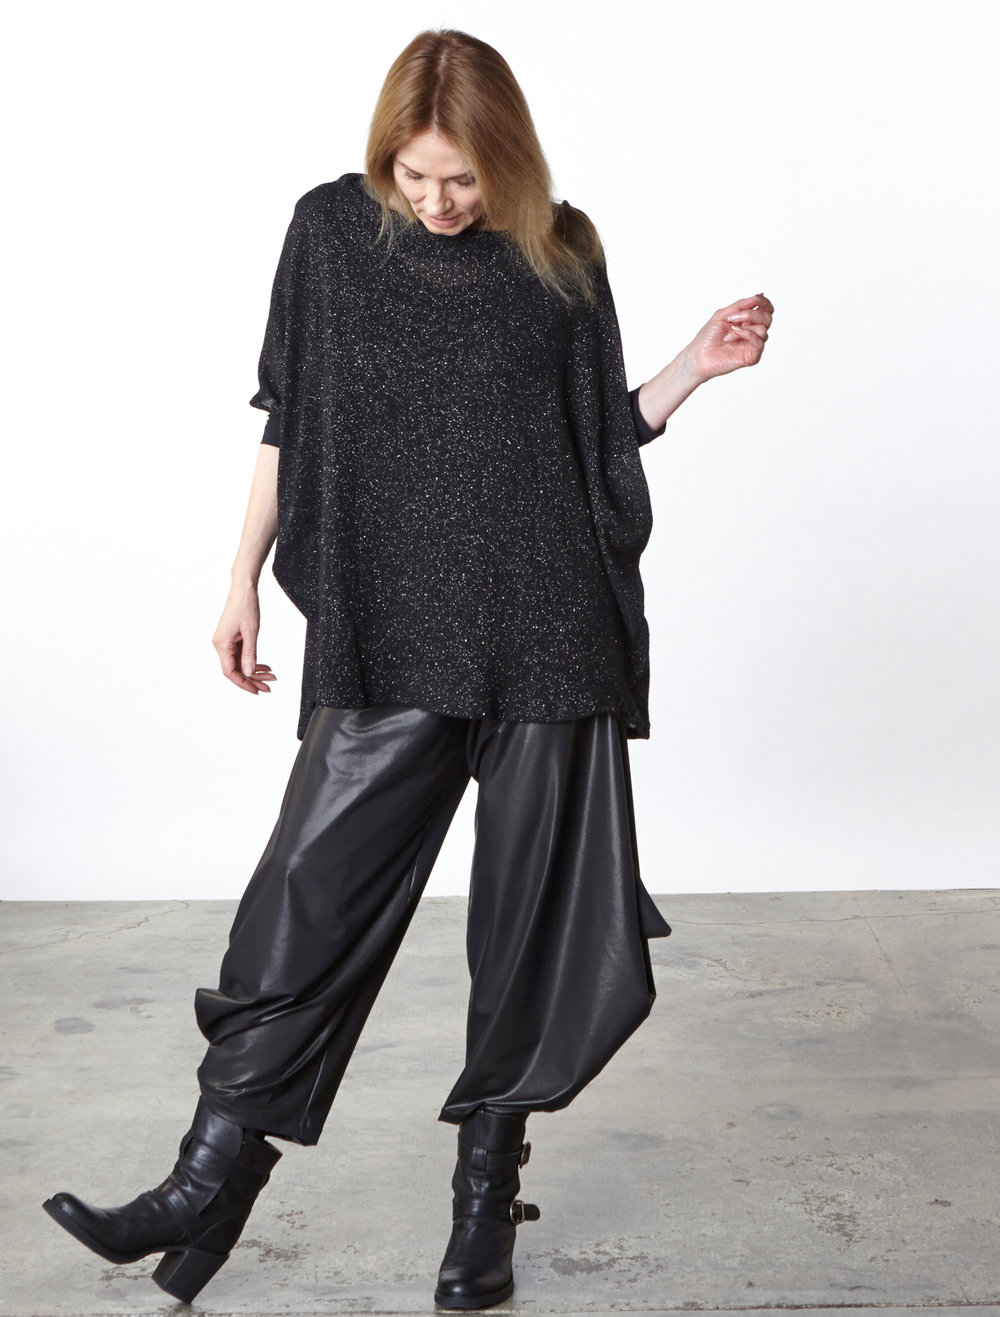 Debo Sweater in Black Italian Sparkle Wool, Hamish Pant in Black Italian Laminato